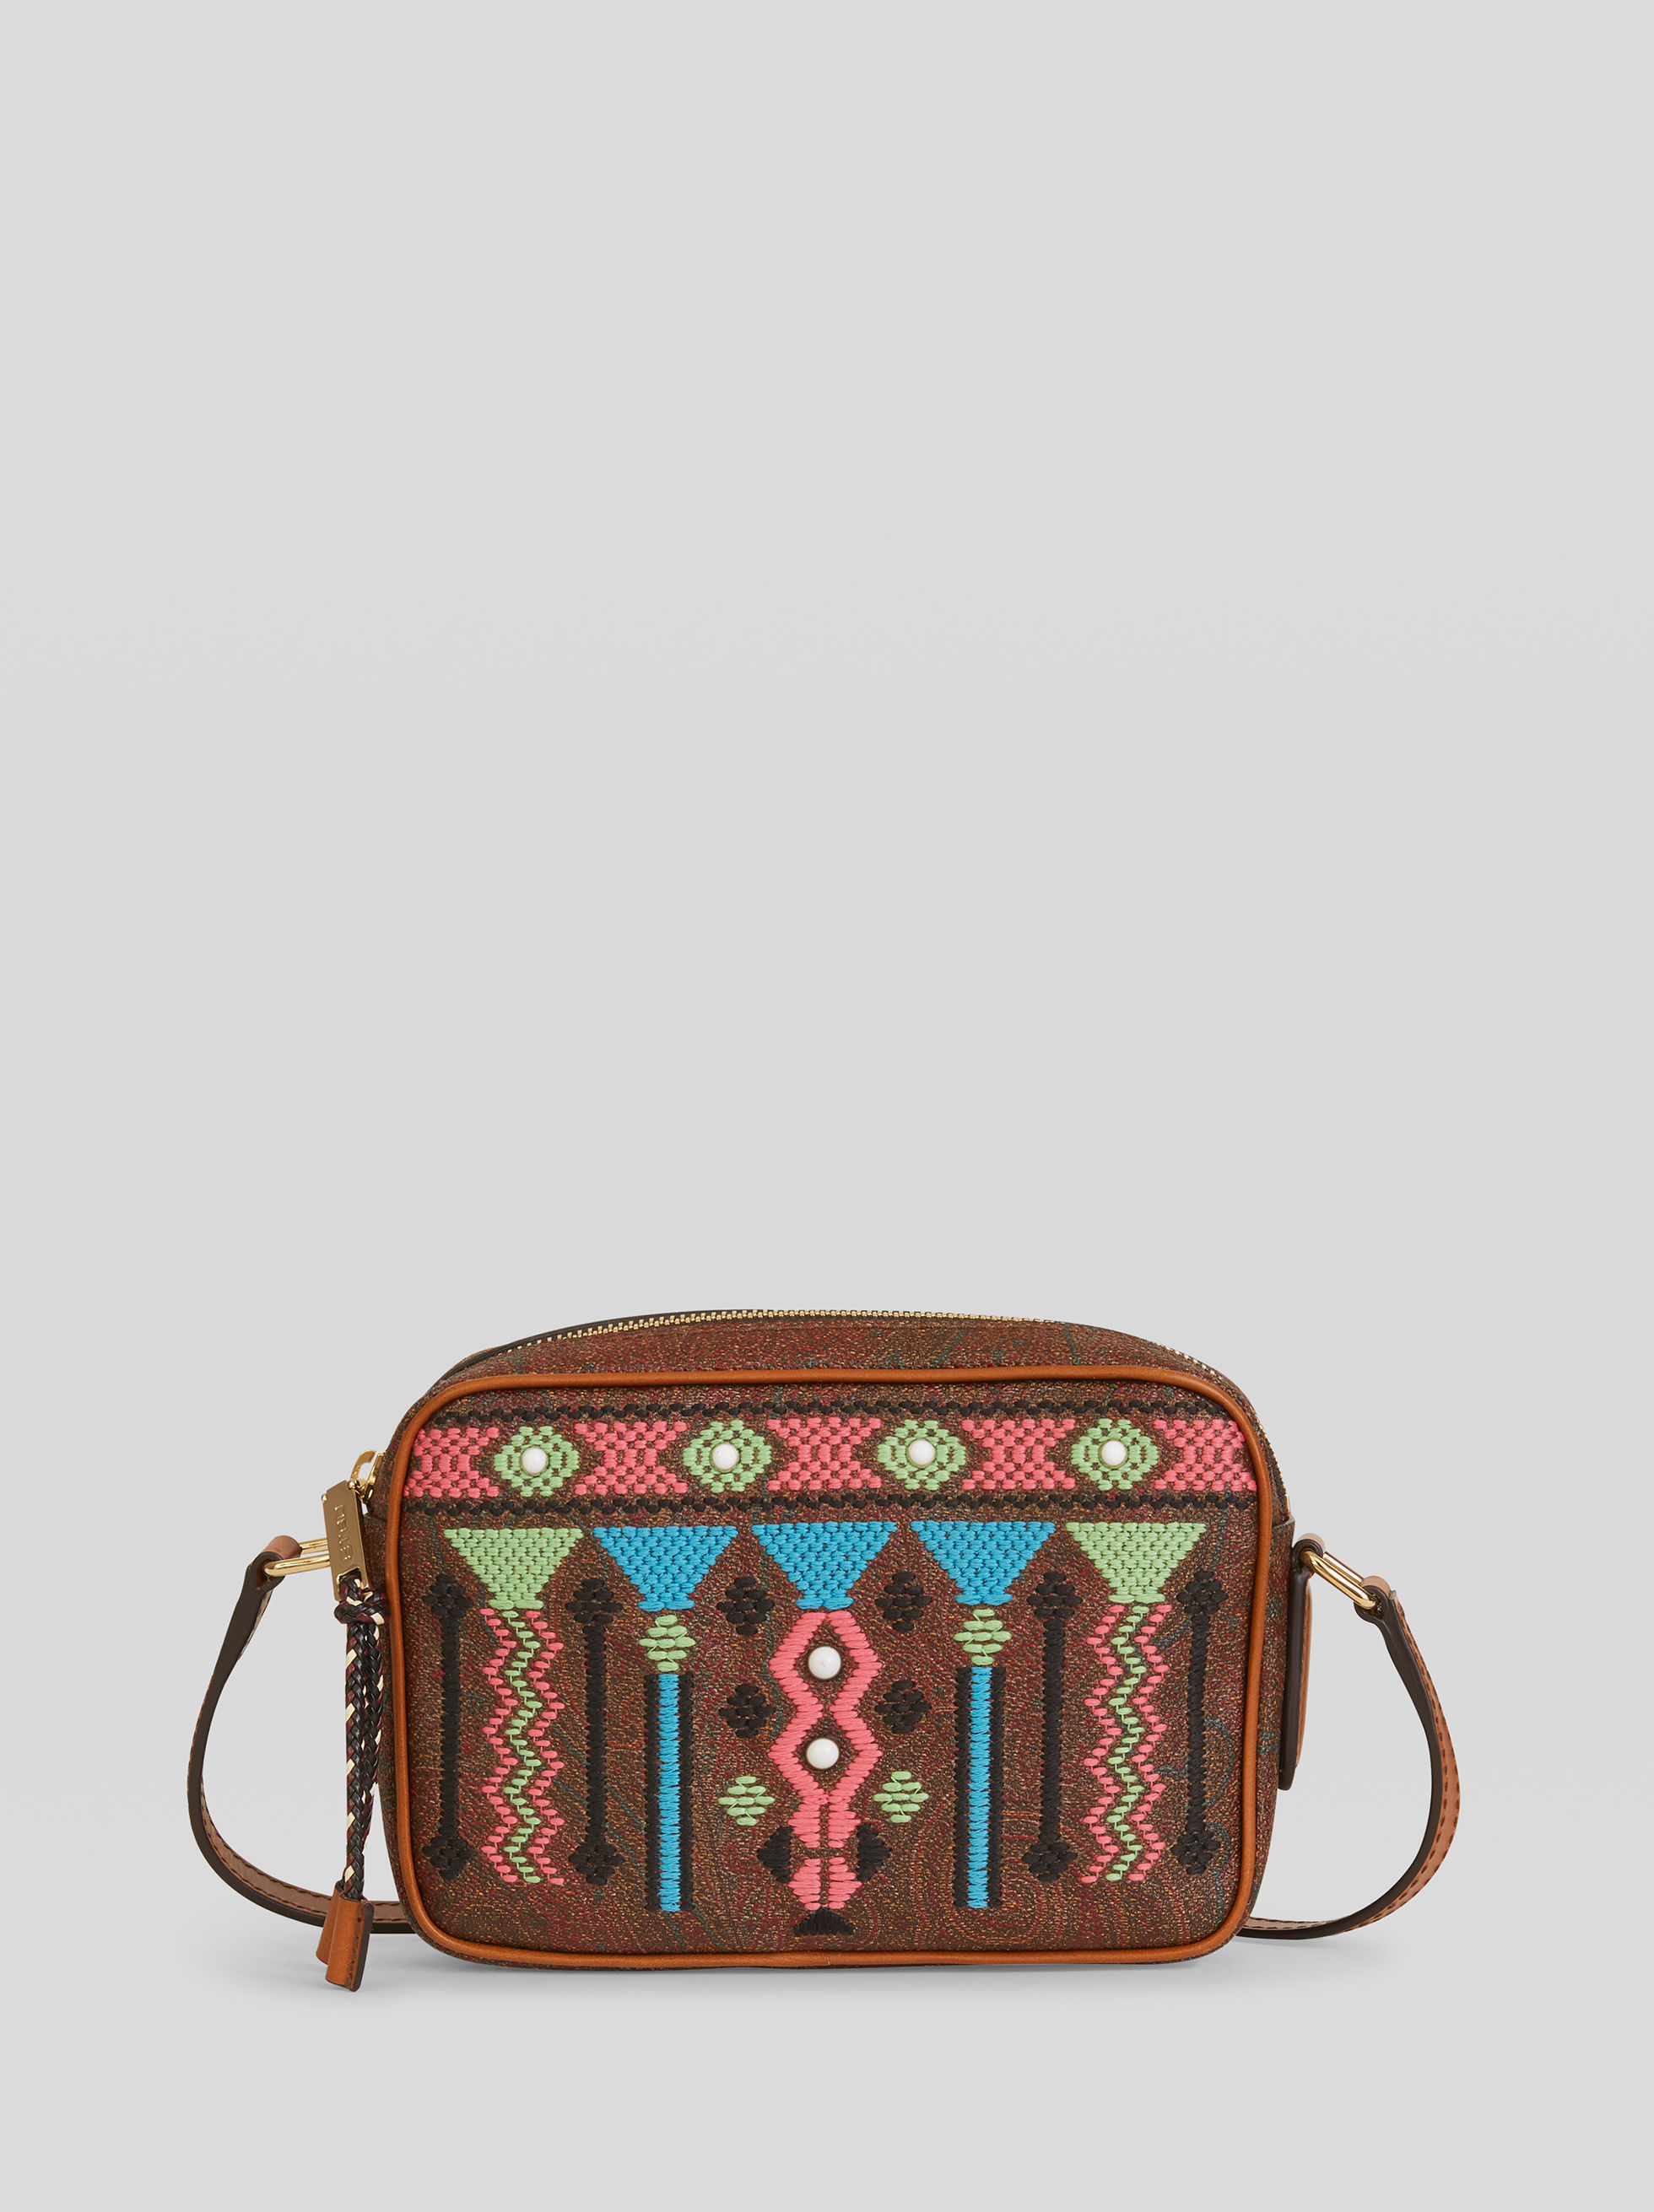 GEOMETRIC EMBROIDERY PAISLEY BAG